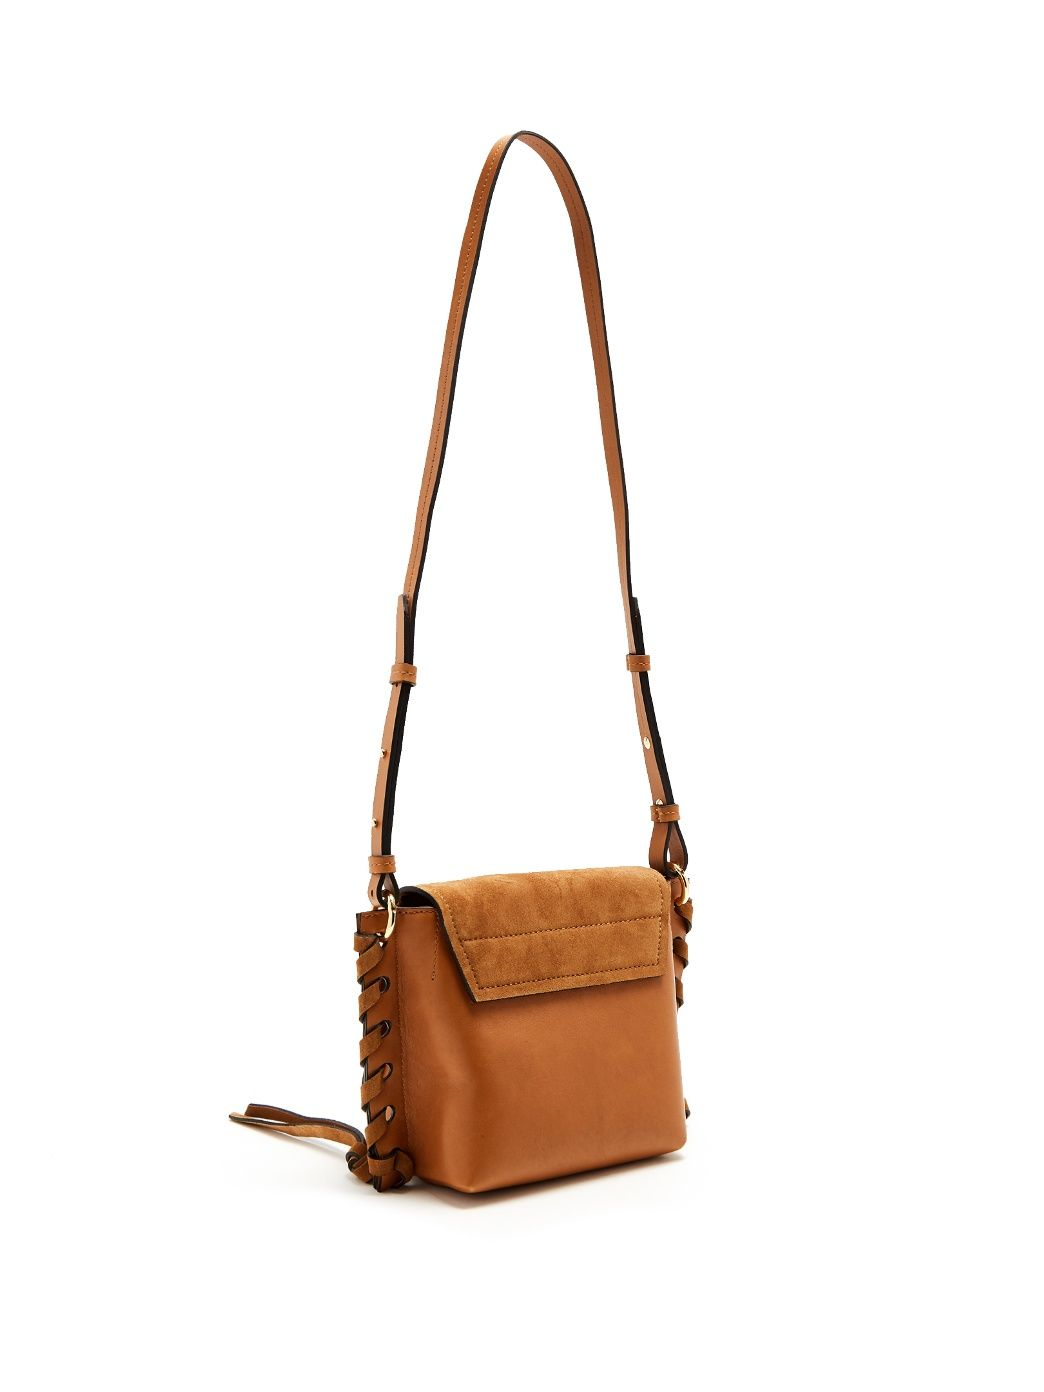 56fe6f885d Kleny suede and leather cross-body bag